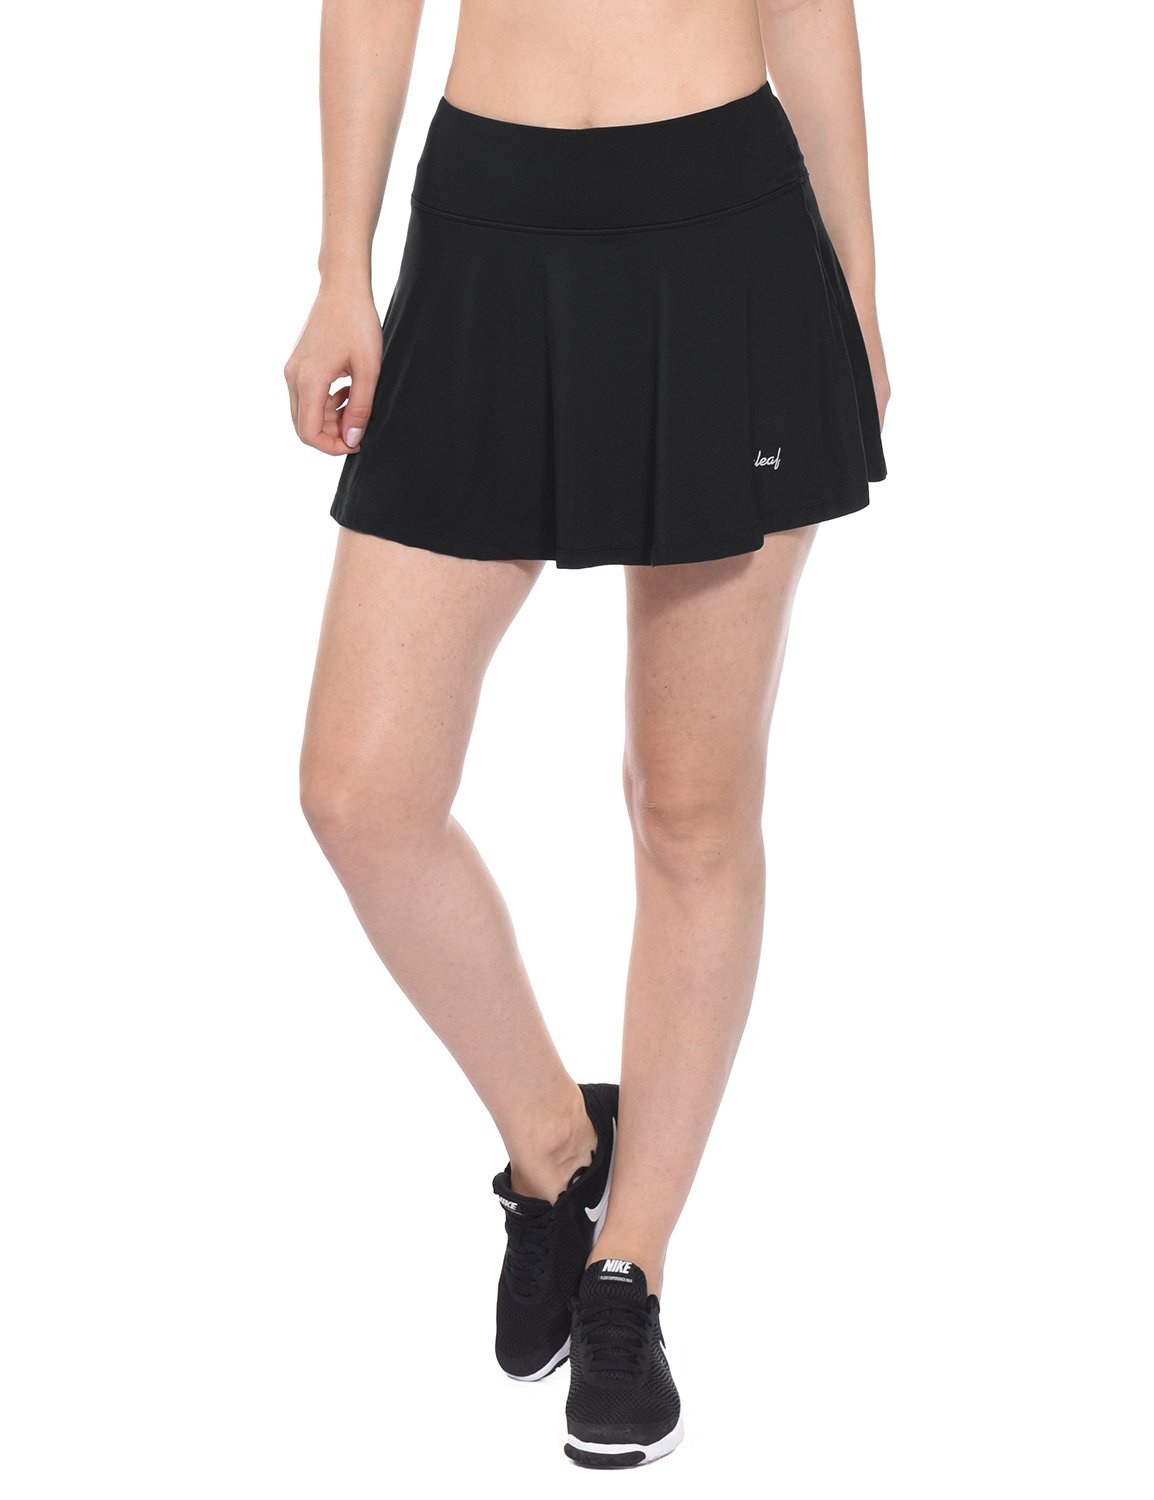 Baleaf Women's Athletic Pleated Tennis Golf Skirt with Pockets Black Size L